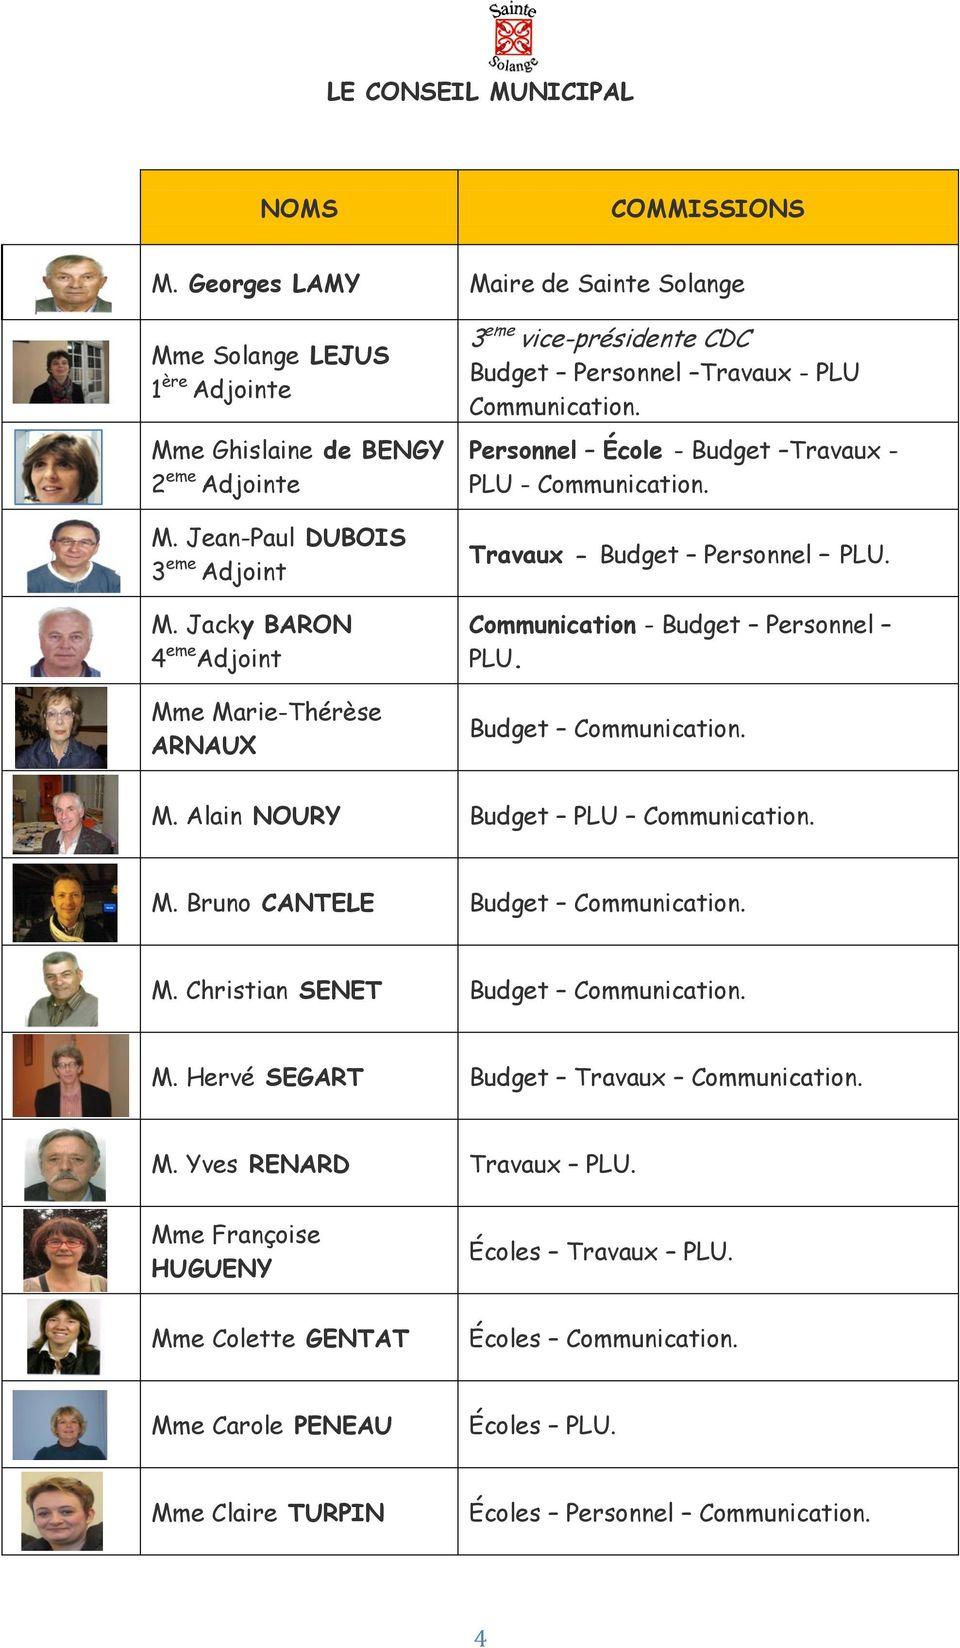 Travaux - Budget Personnel PLU. Communication - Budget Personnel PLU. Budget Communication. M. Alain NOURY Budget PLU Communication. M. Bruno CANTELE Budget Communication. M. Christian SENET Budget Communication.